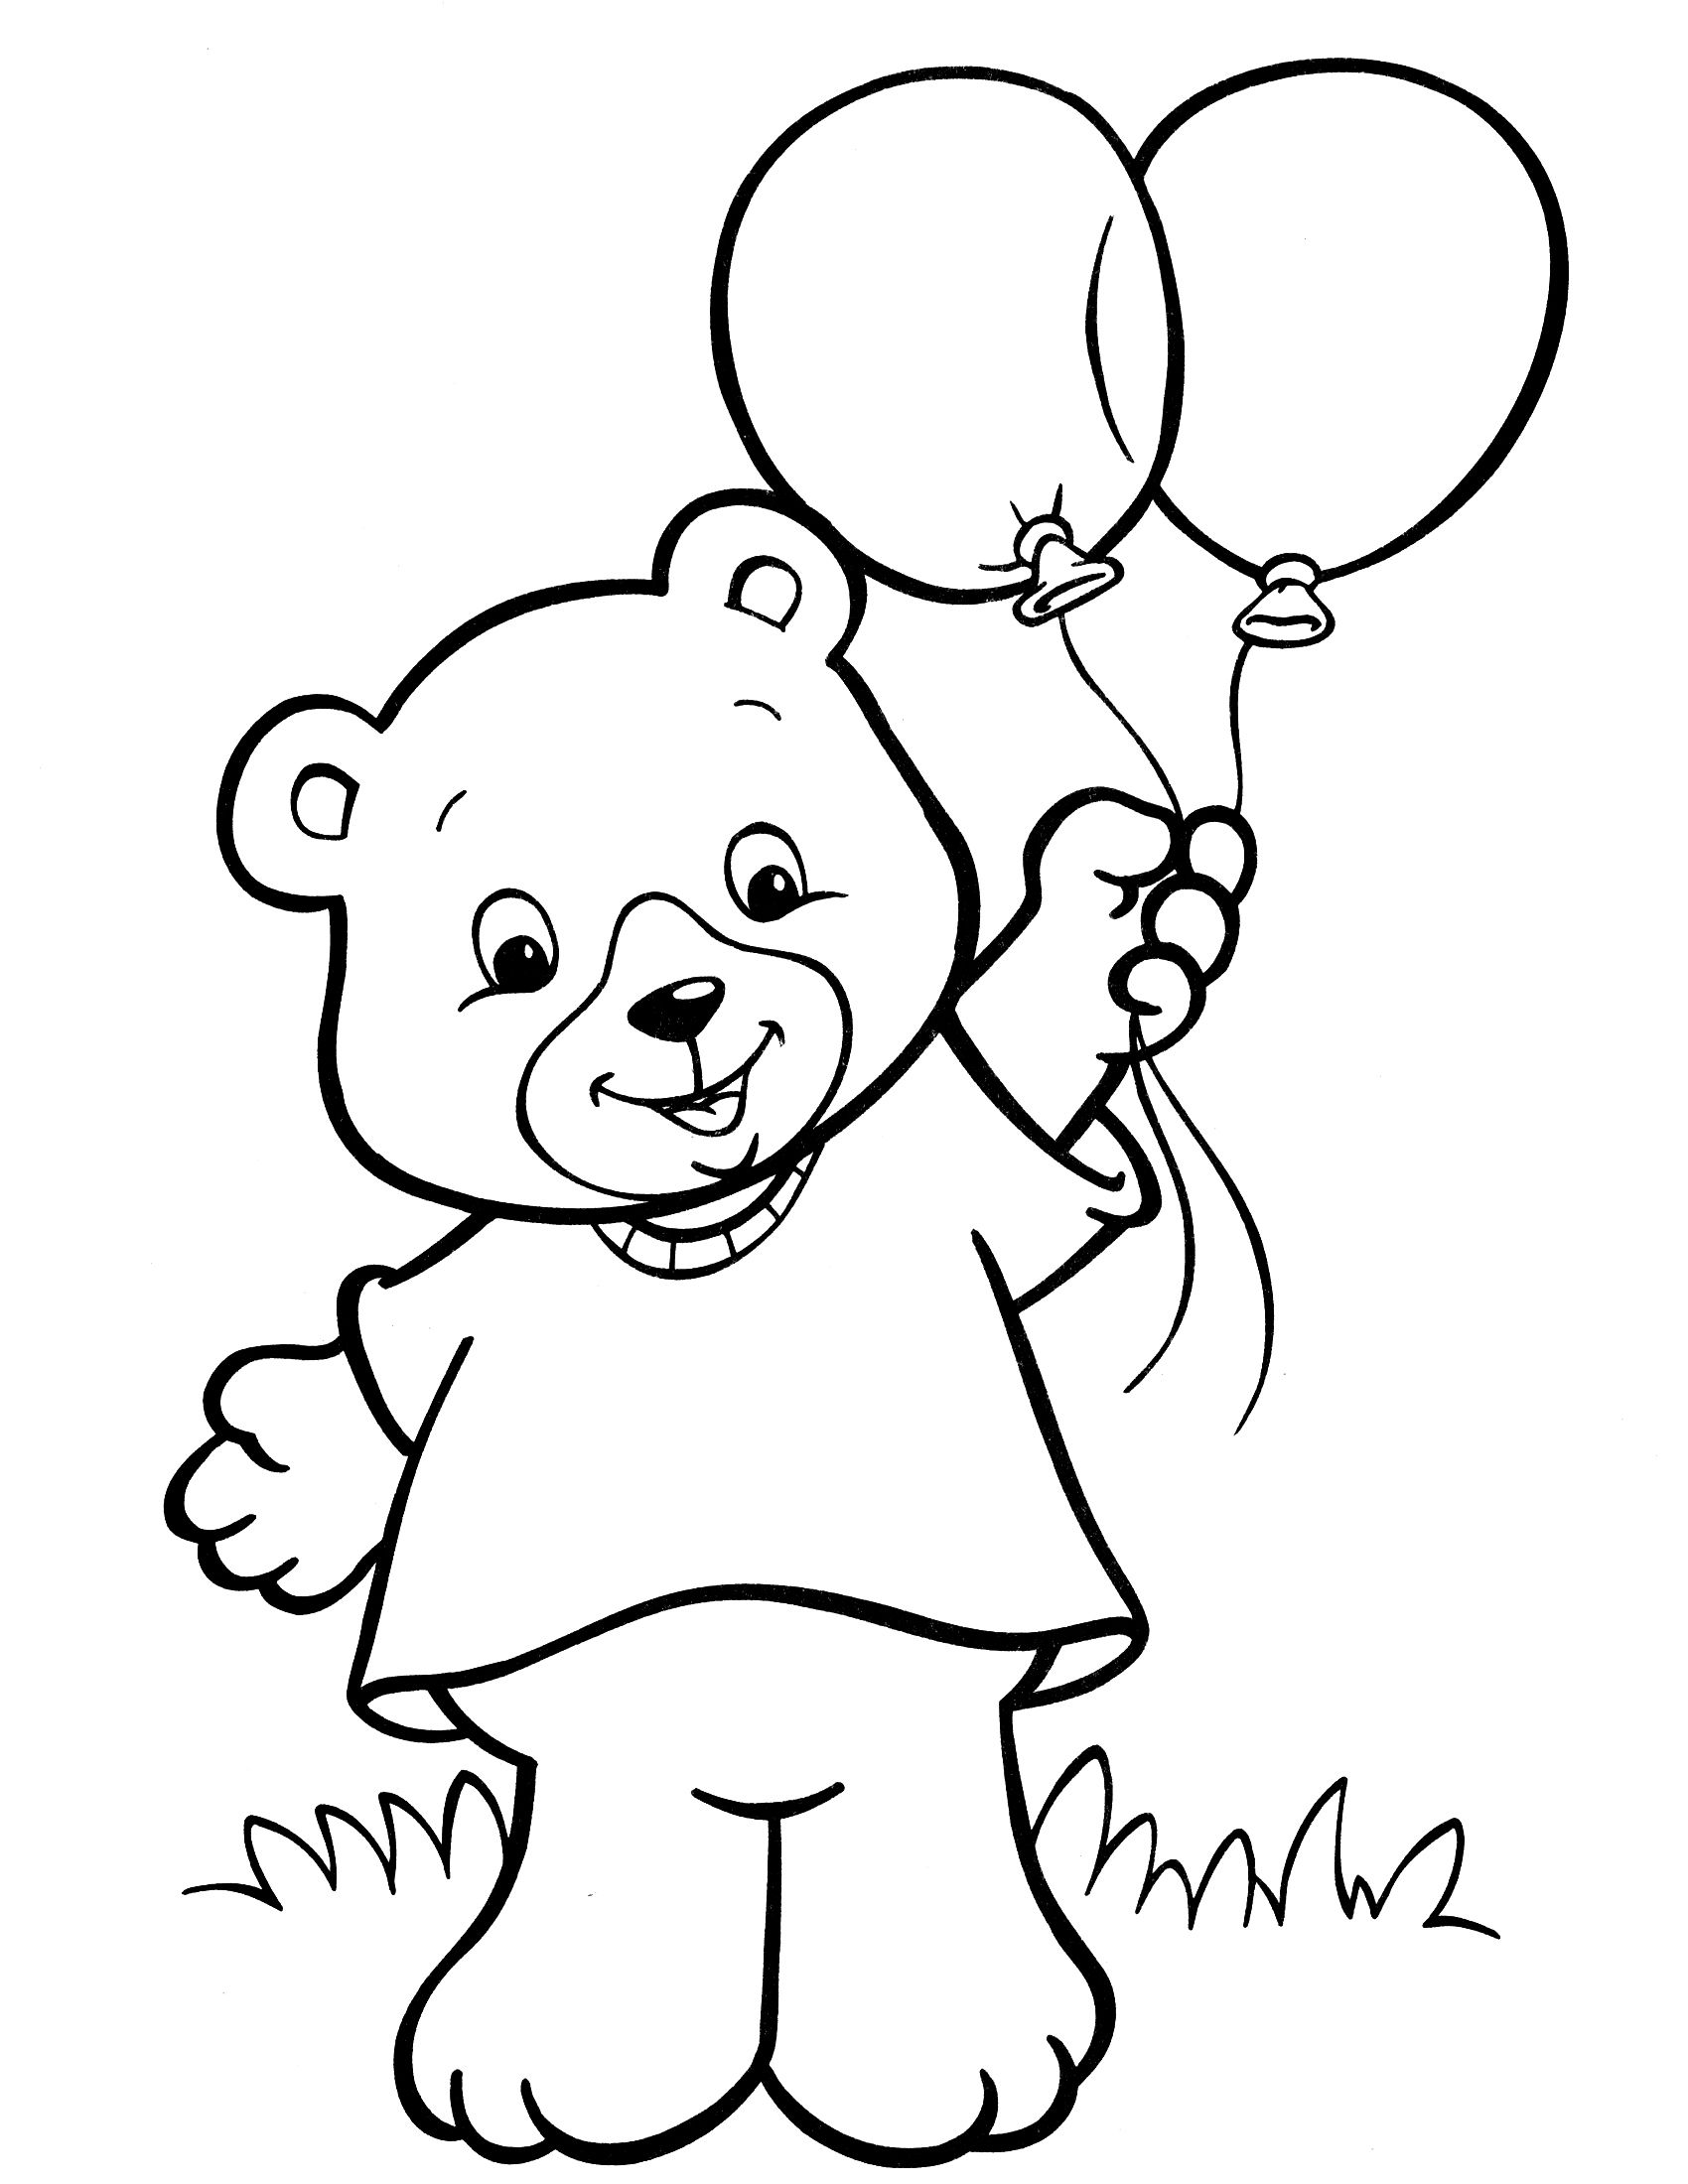 Crayola Coloring Pages To Print